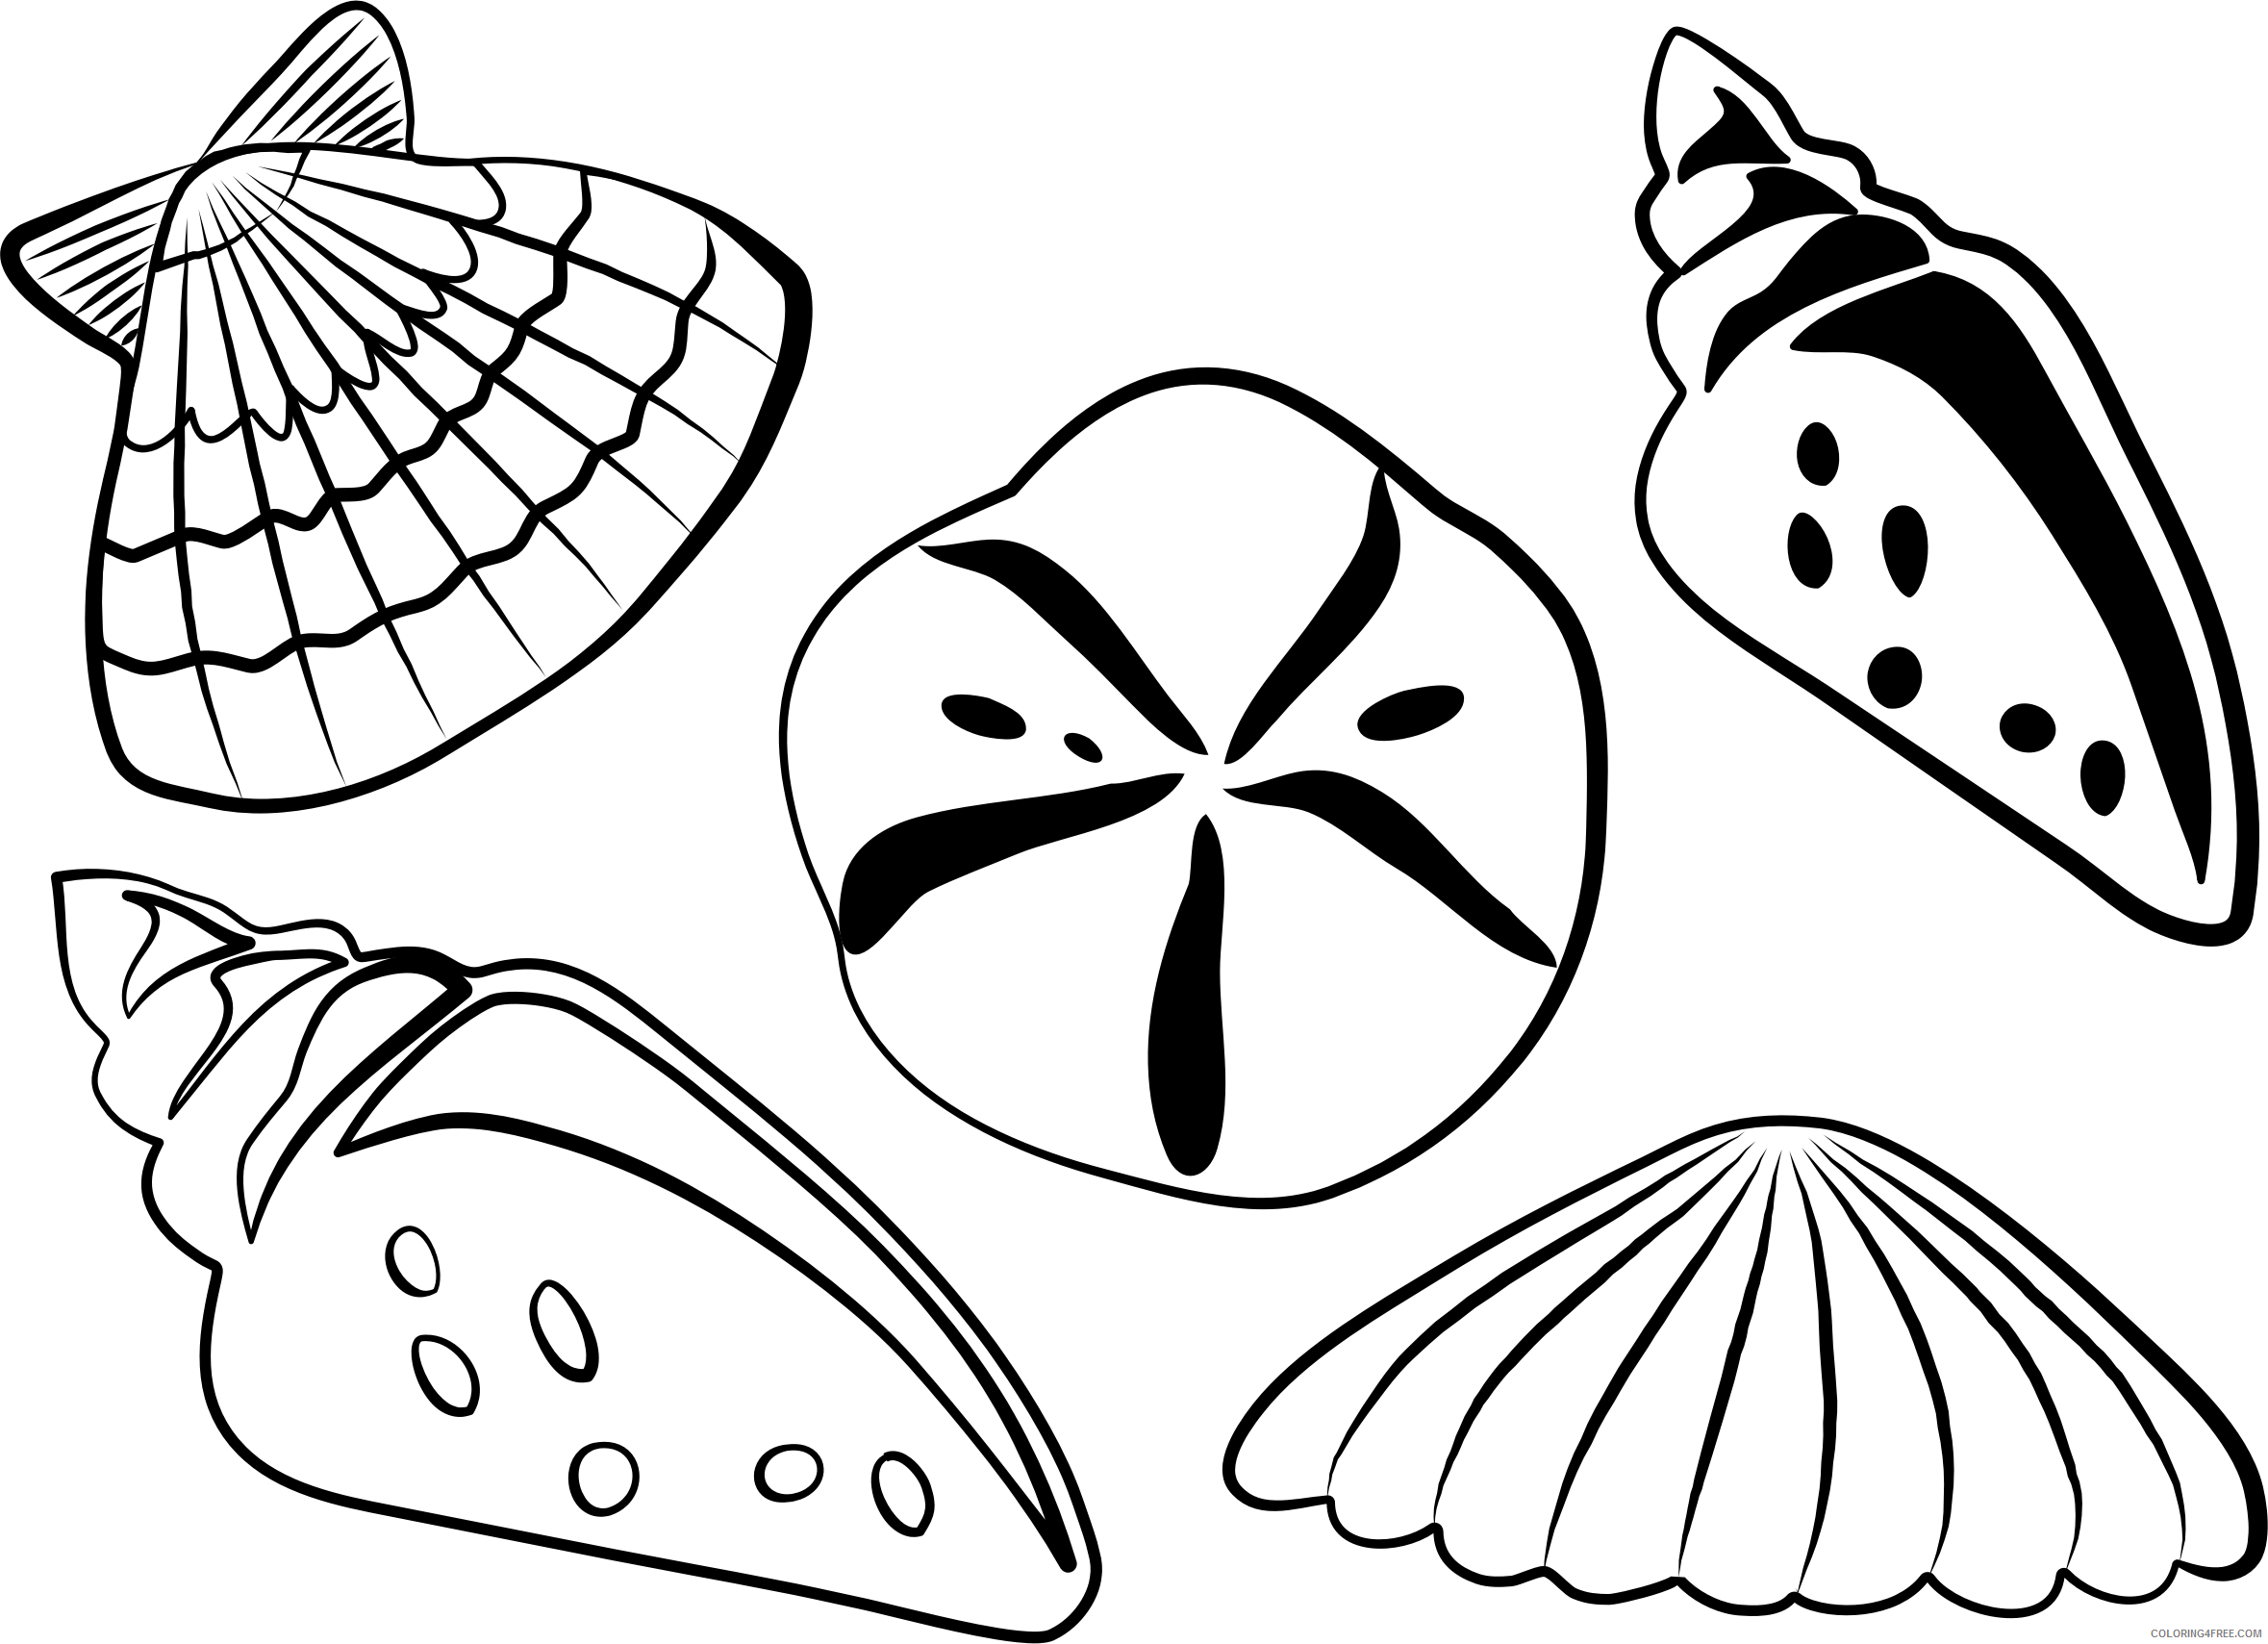 Shell Clip Art - Sea Shell Coloring Pages - Free Transparent PNG ... | 1709x2358